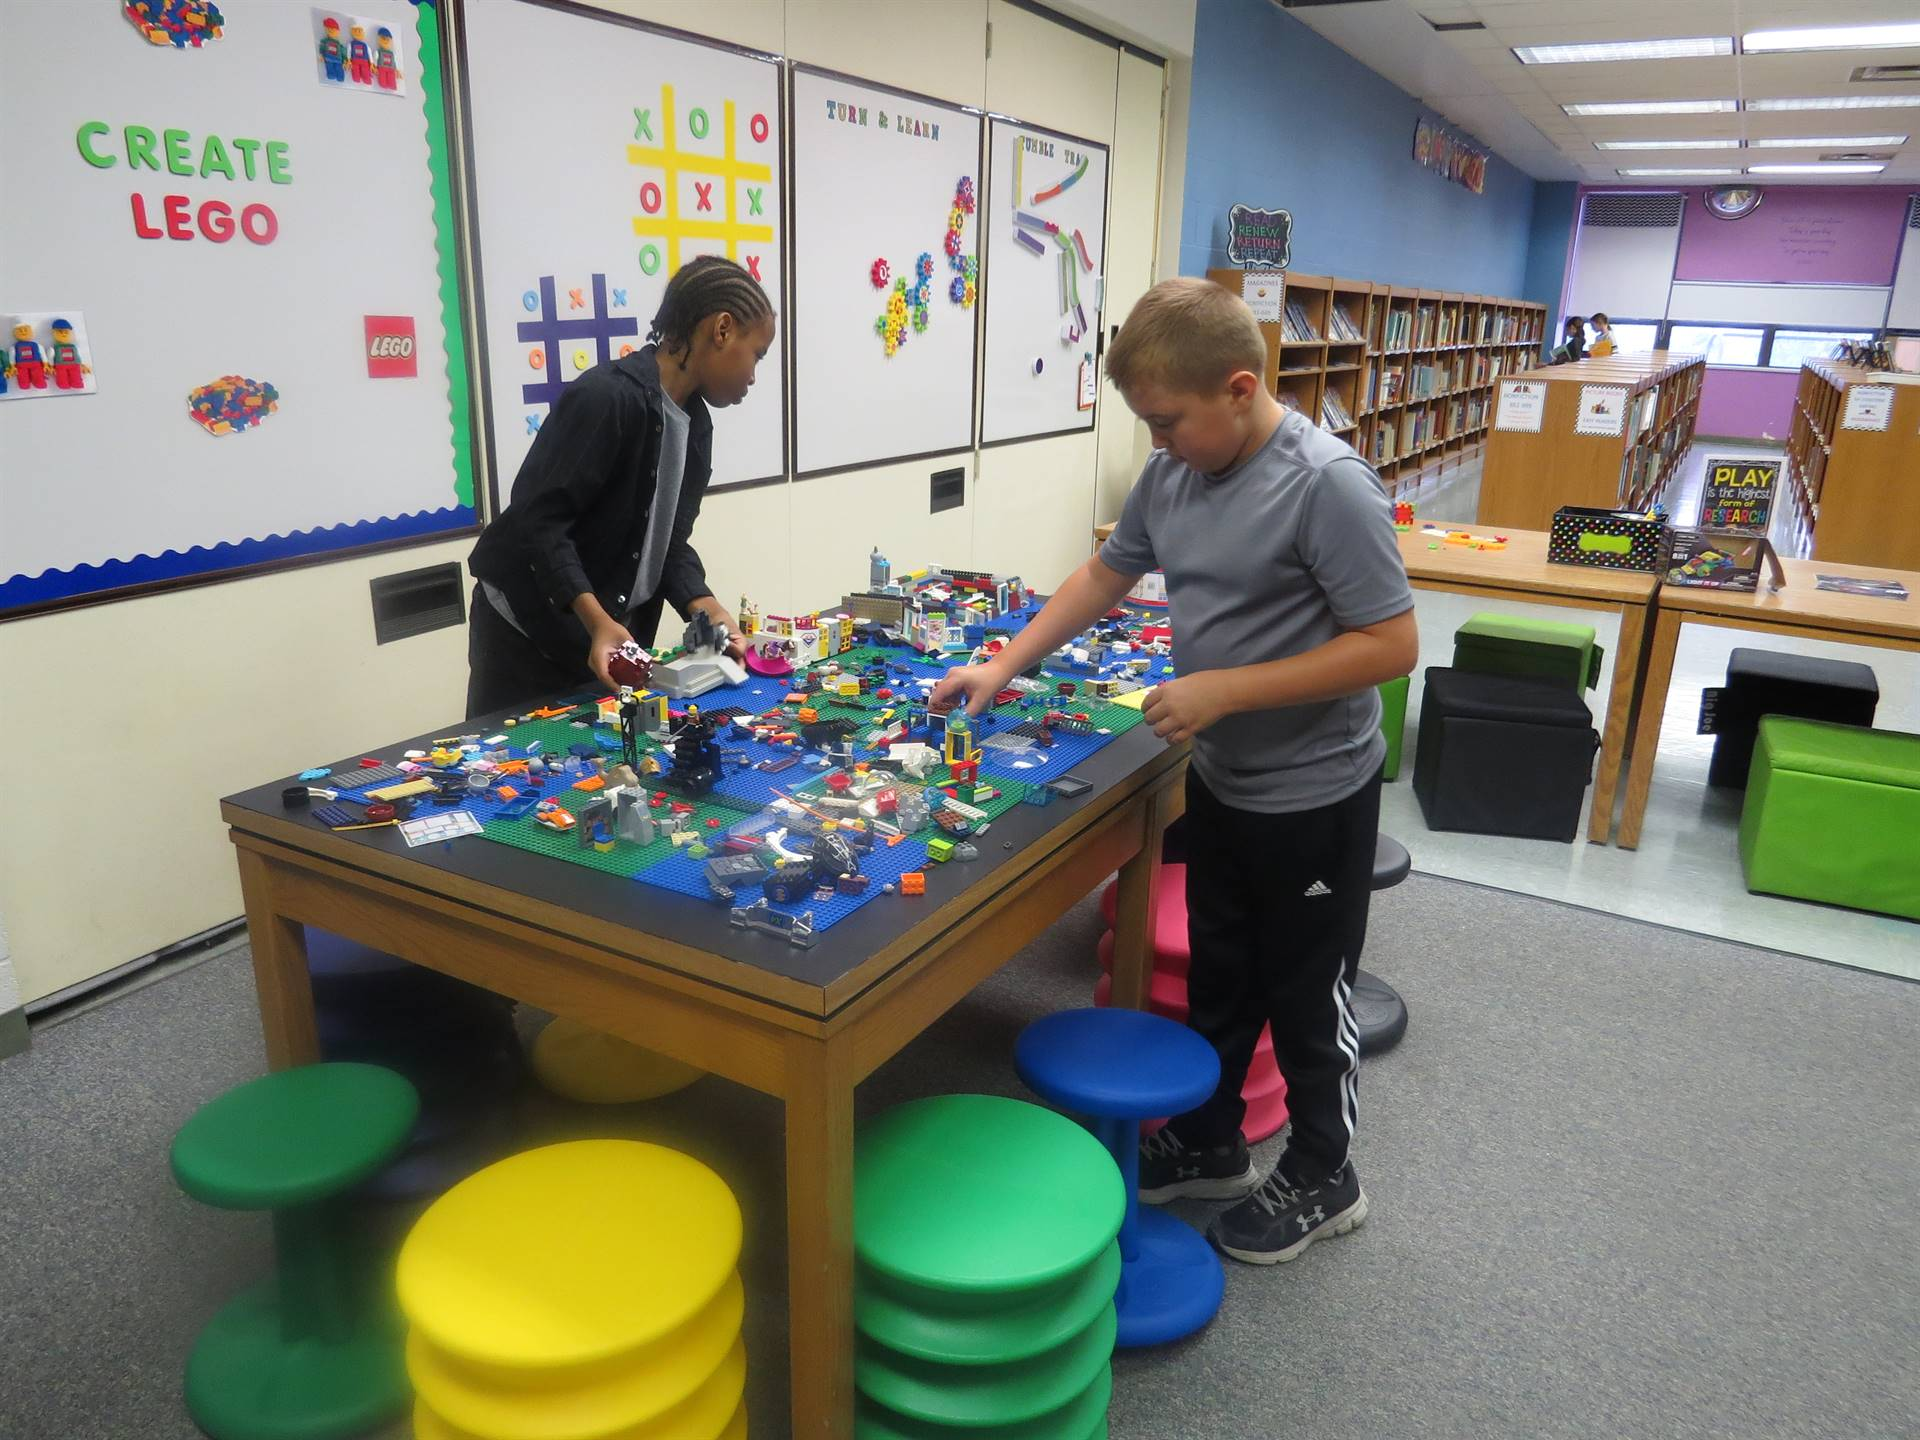 Male students creating Lego structures at the Lego Table